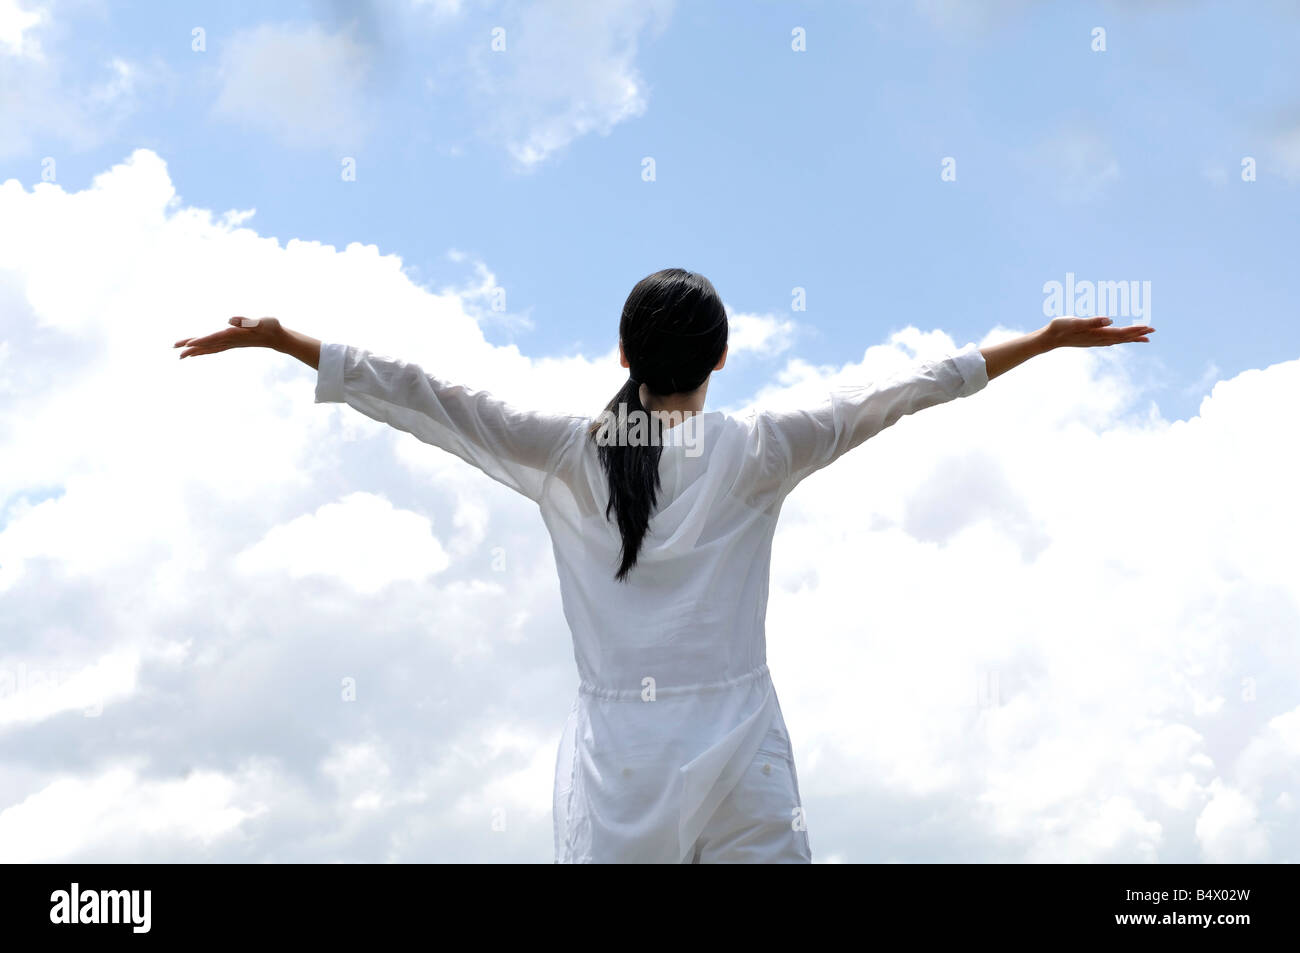 Woman opening her arms against sky - Stock Image